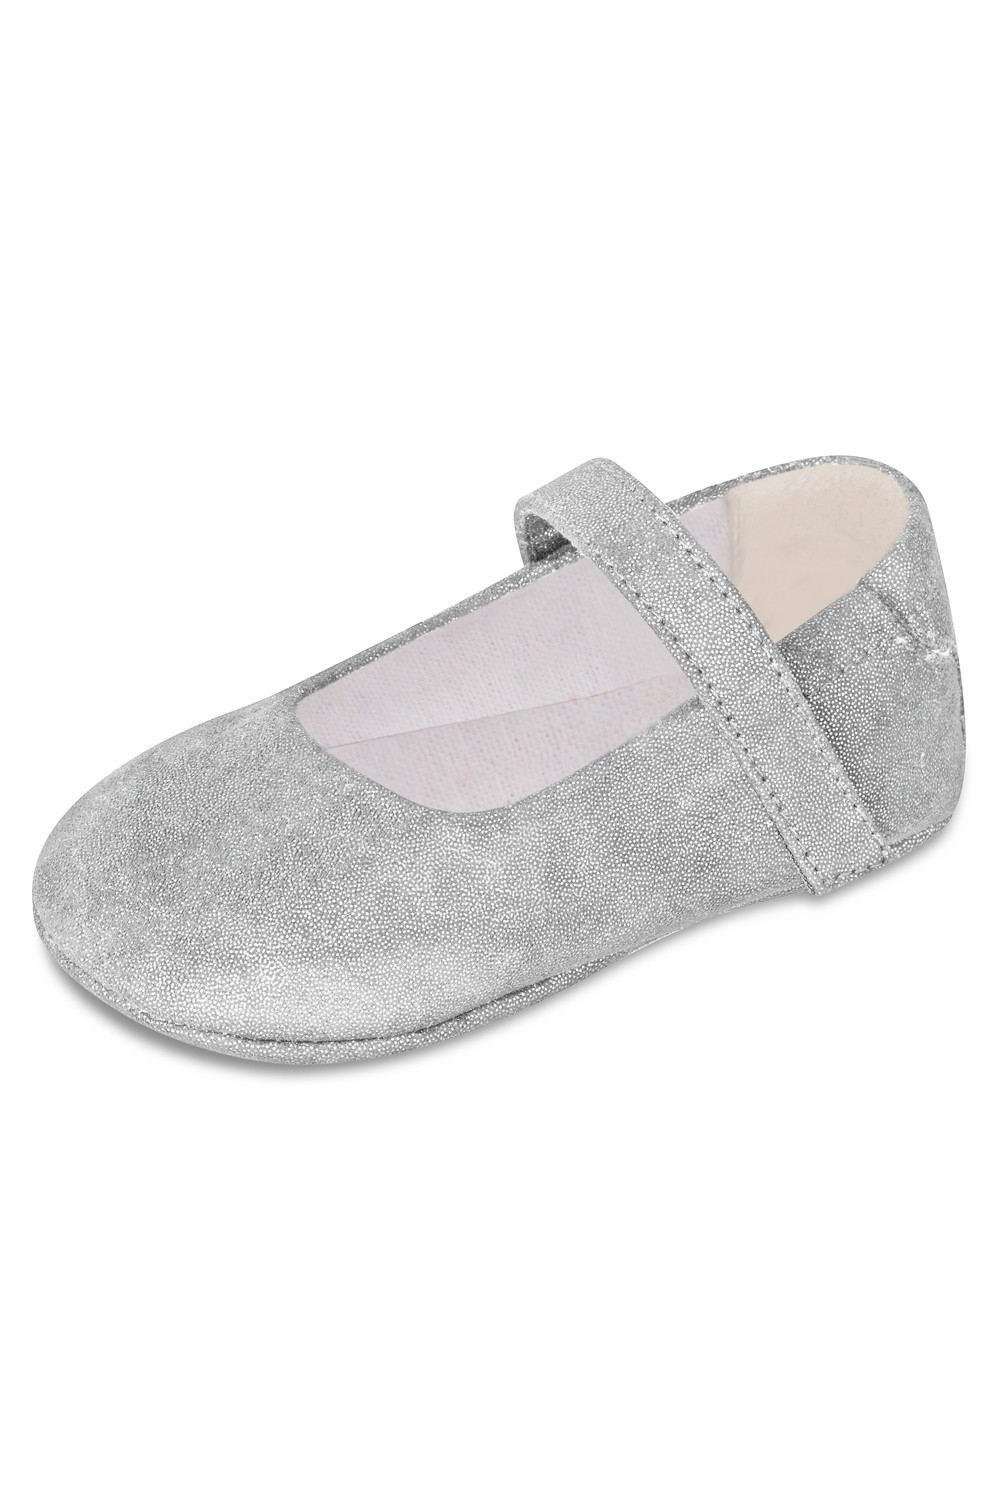 Argento Baby Emanuelle Shoes Babies Fashion Shoes